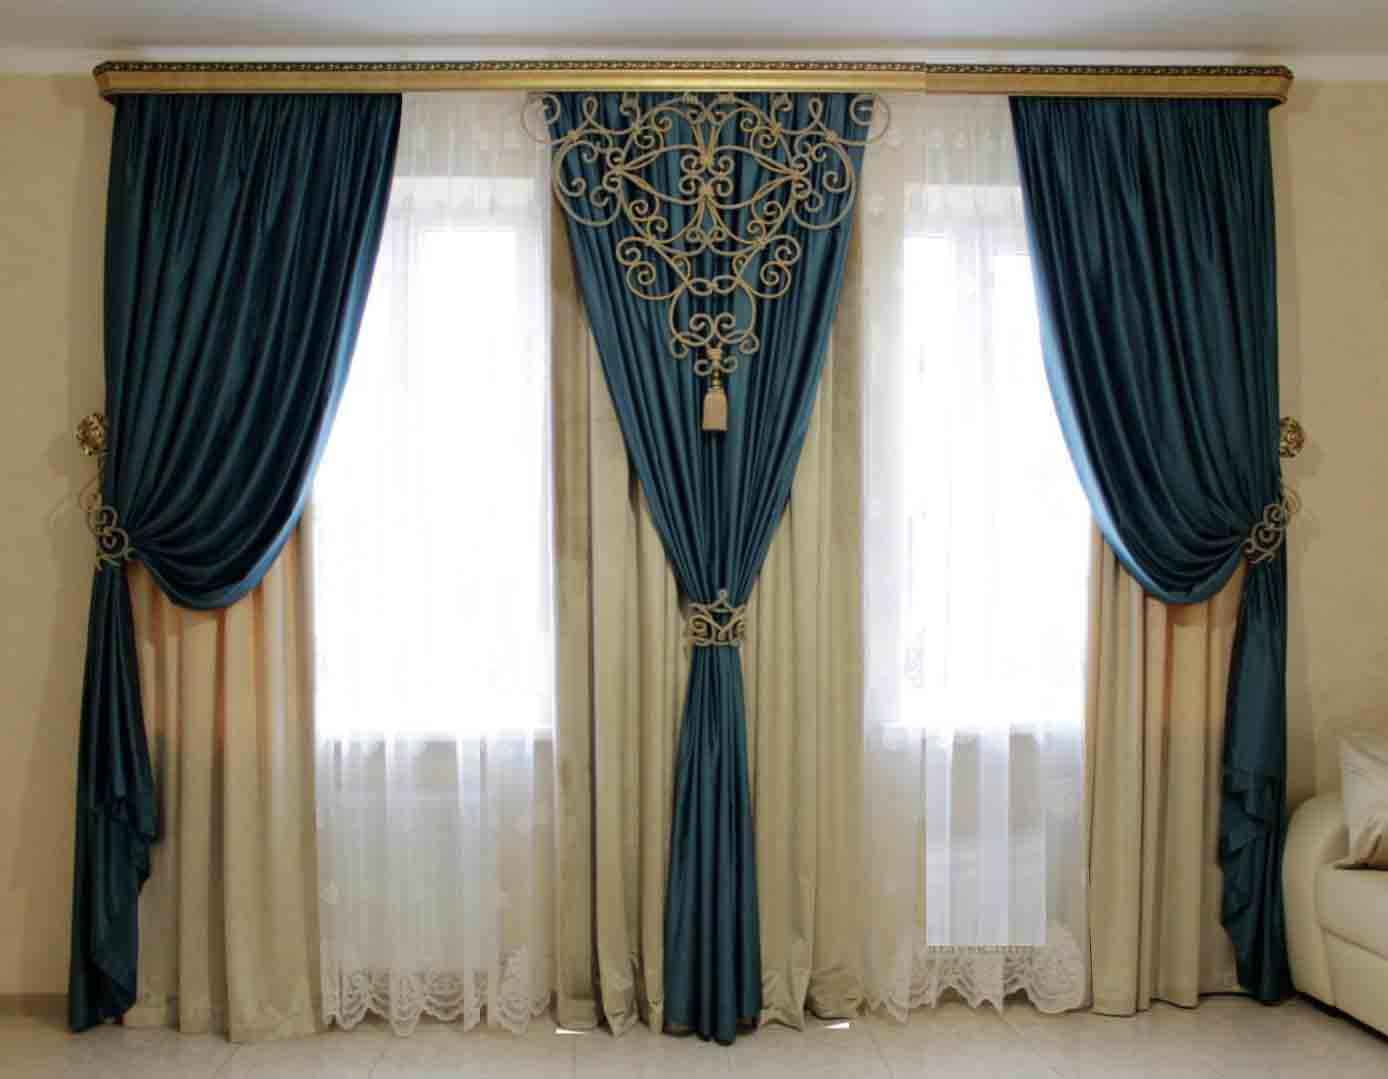 Modern Curtains Design For Living Room - interior design ideas